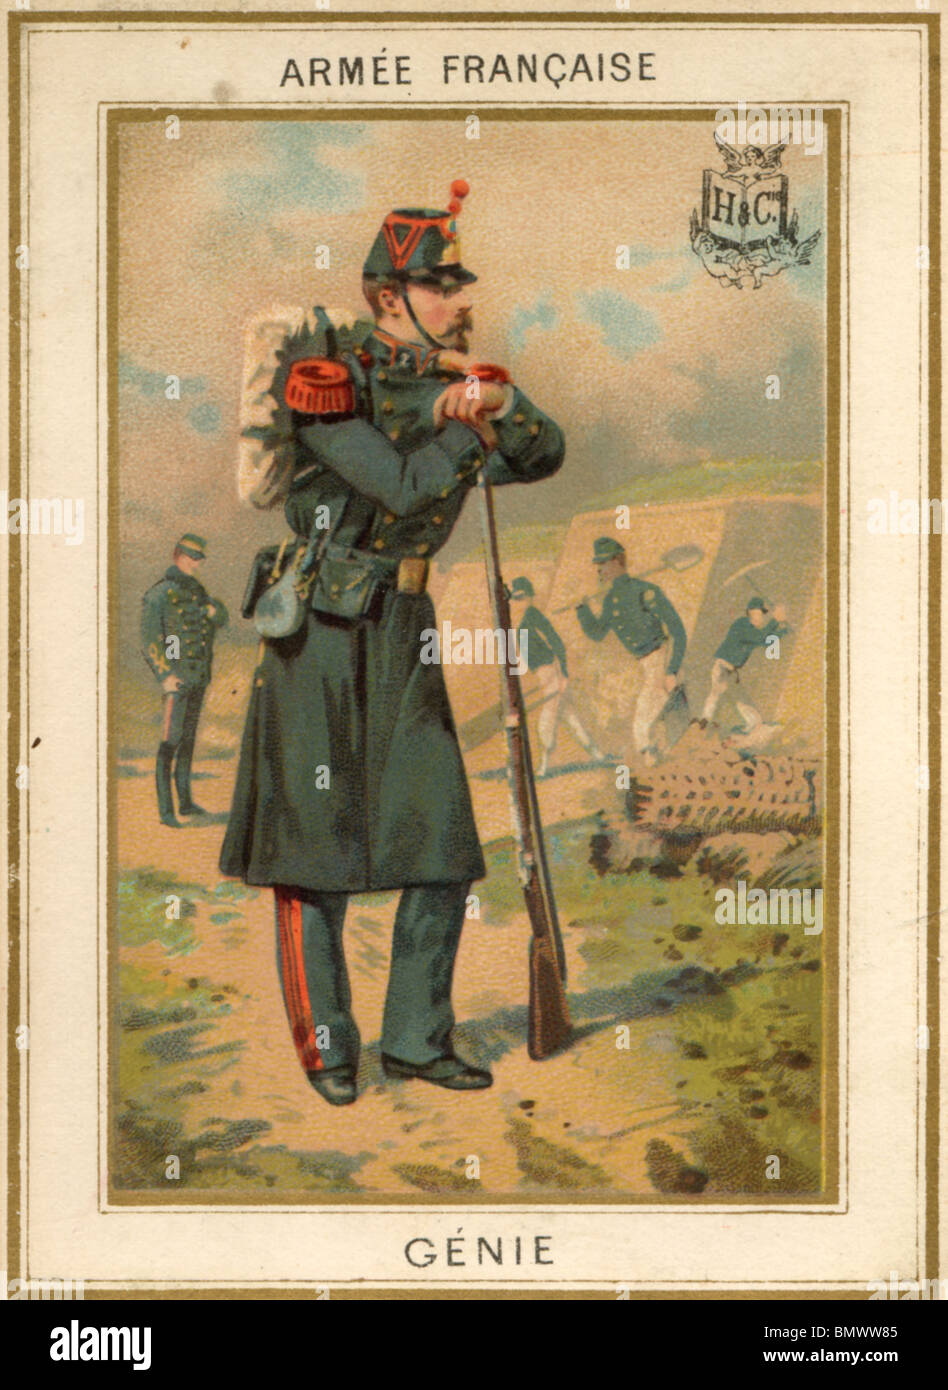 French Army - Stock Image